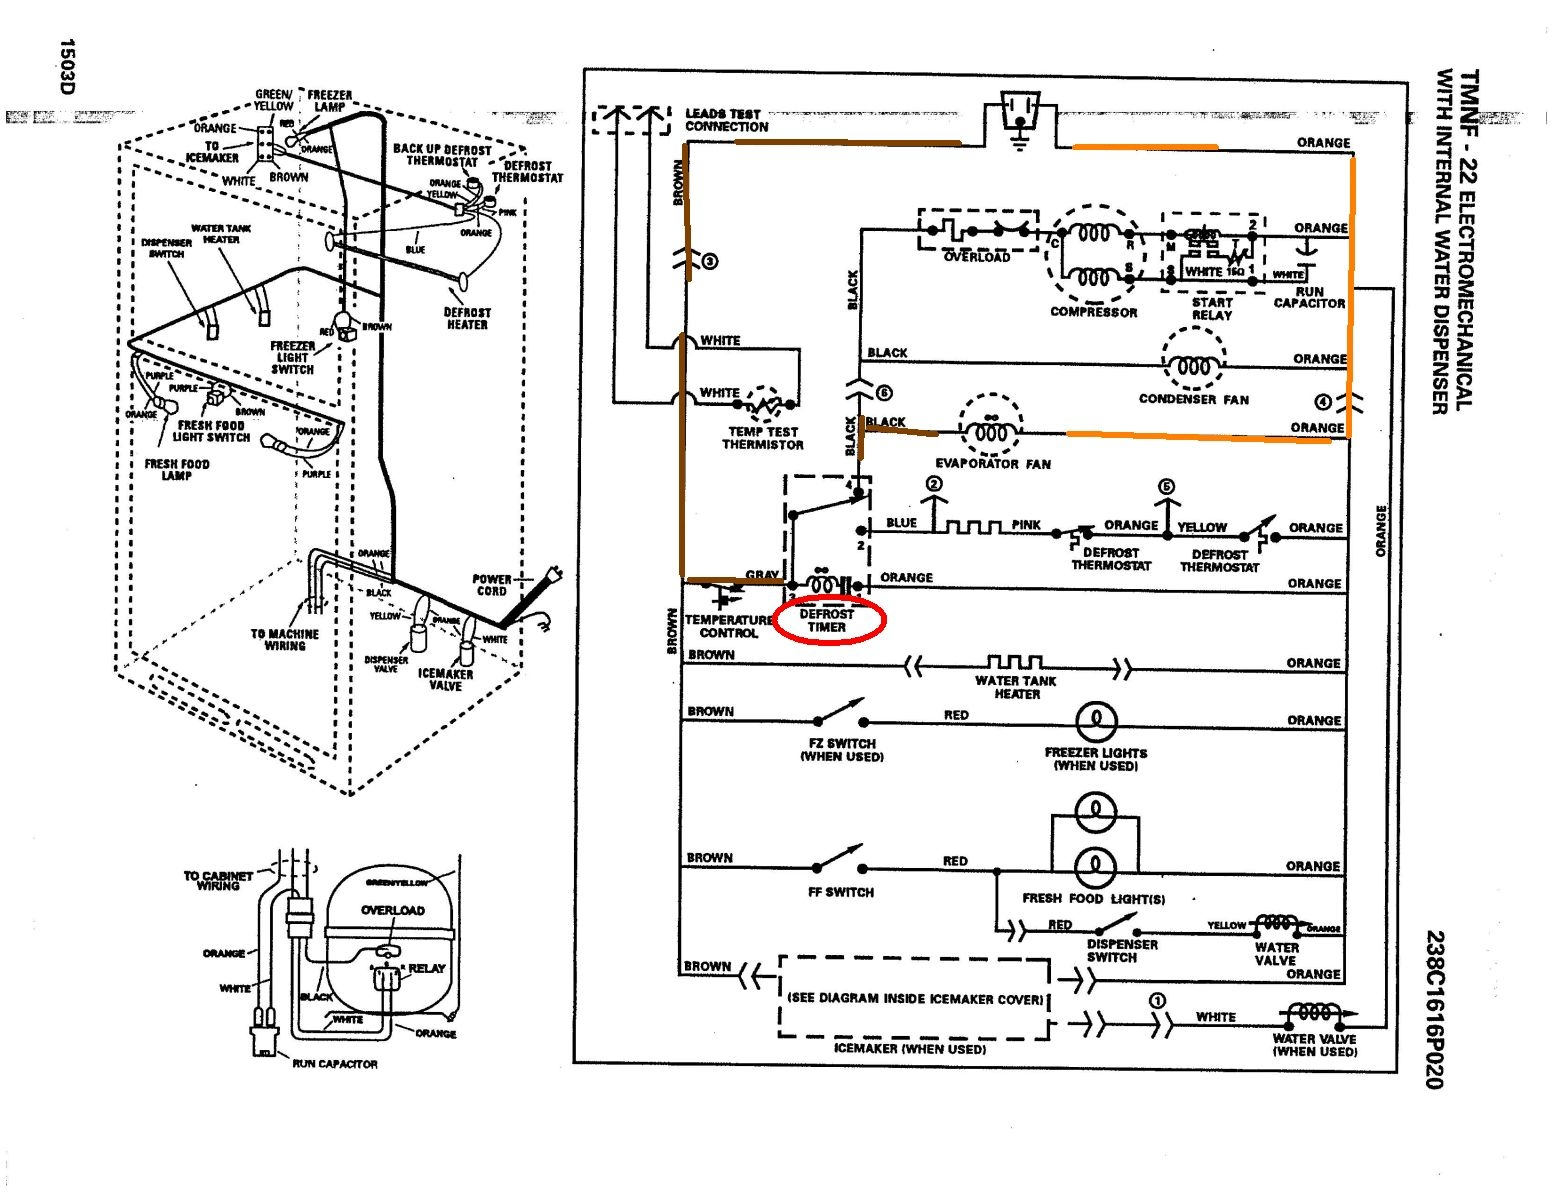 Ge Refrigerator Compressor Wiring Diagram - Wiring Diagrams ... on